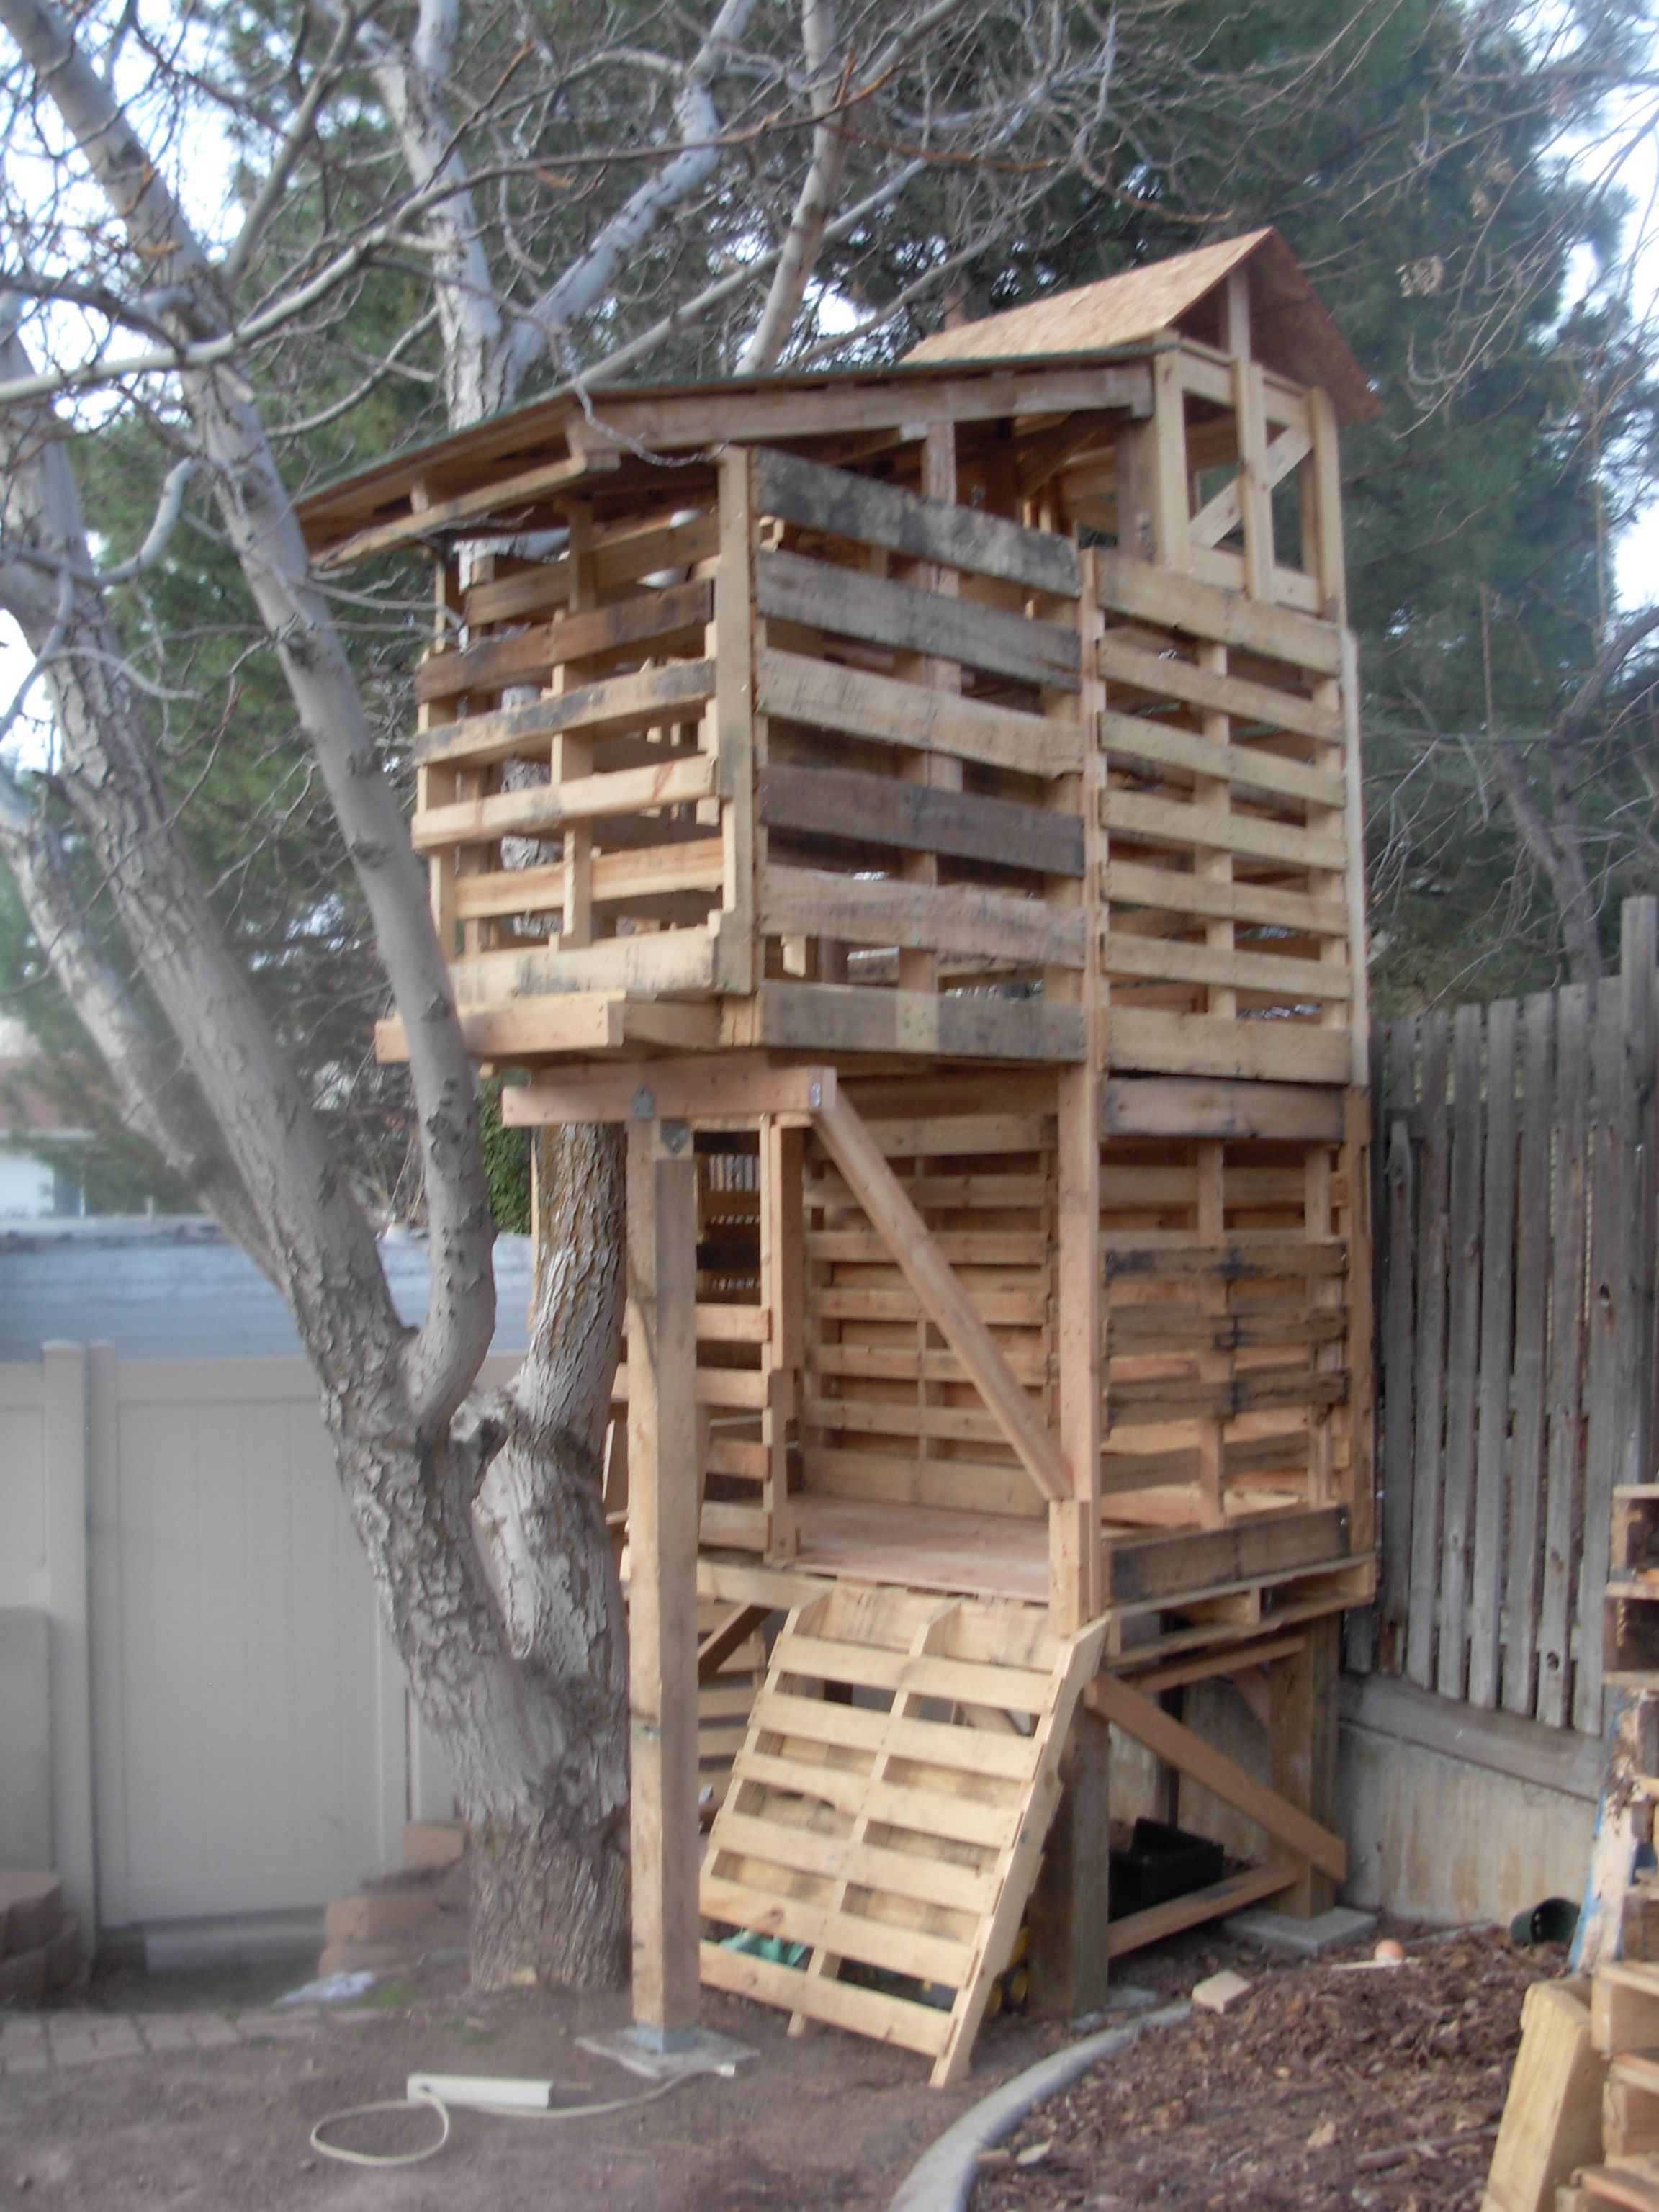 Rustic Diy Tree Houses Design Ideas For Your Kids And Family19